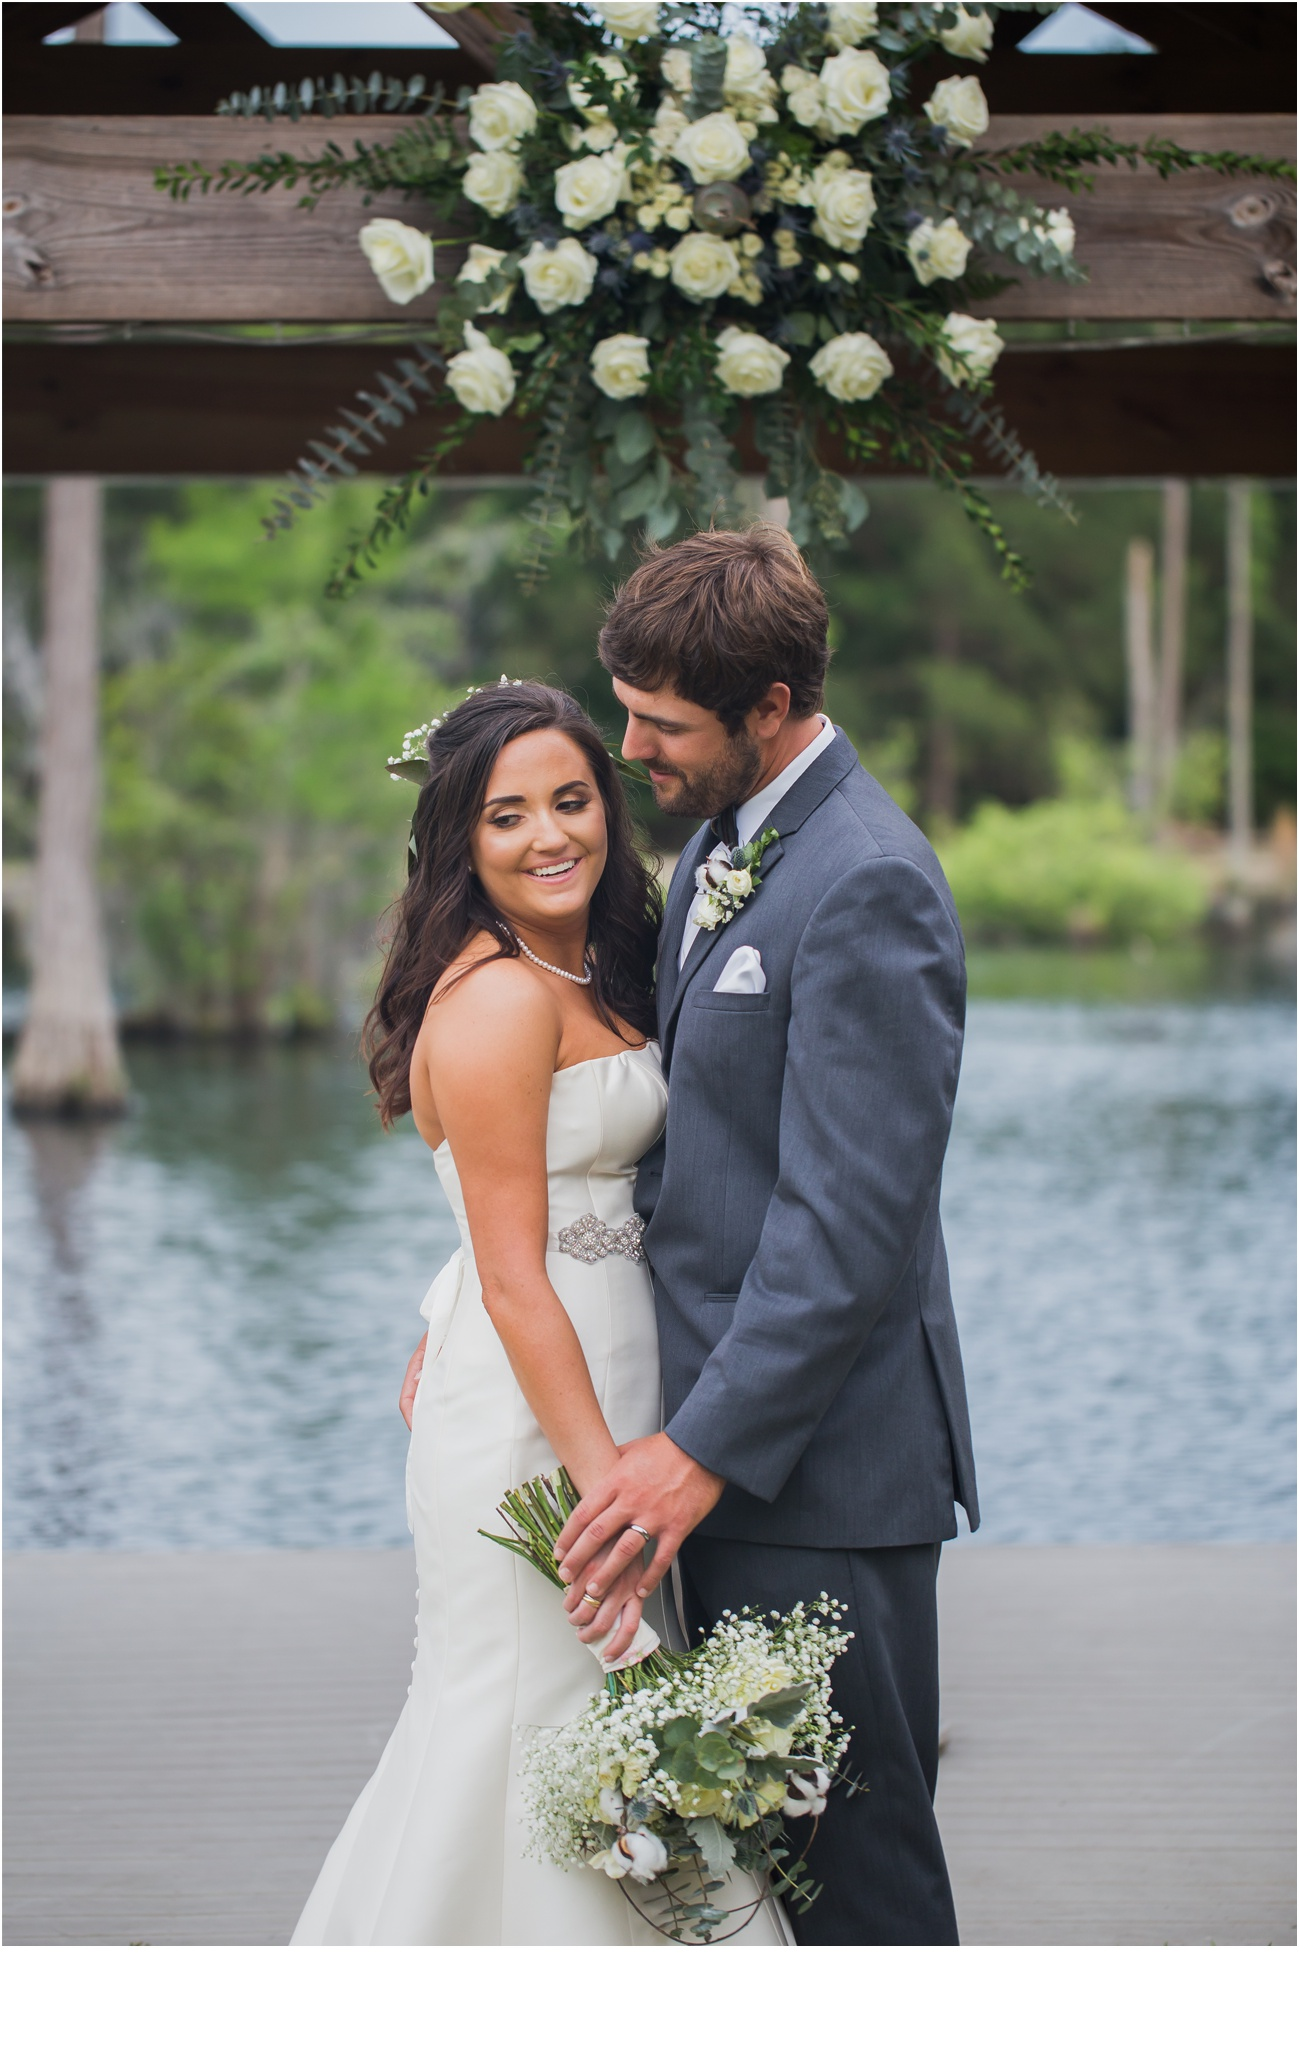 Rainey_Gregg_Photography_St._Simons_Island_Georgia_California_Wedding_Portrait_Photography_1005.jpg